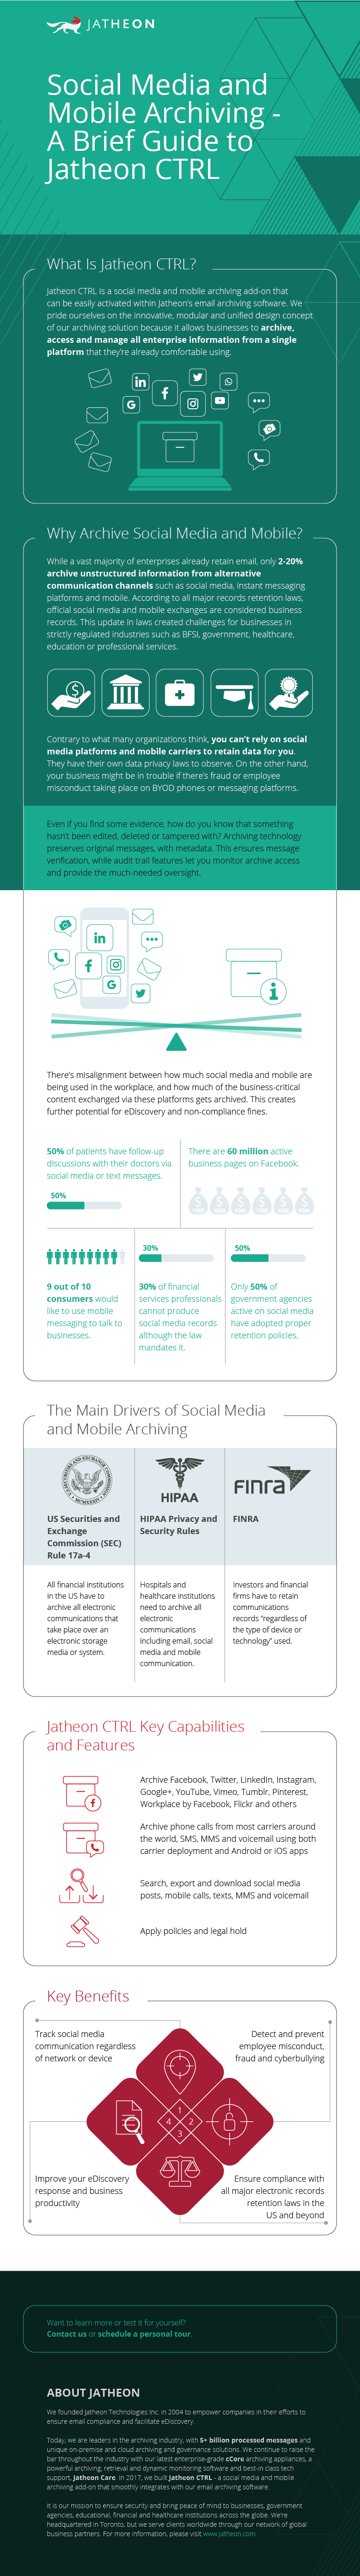 Social Media and Mobile Archiving infographic